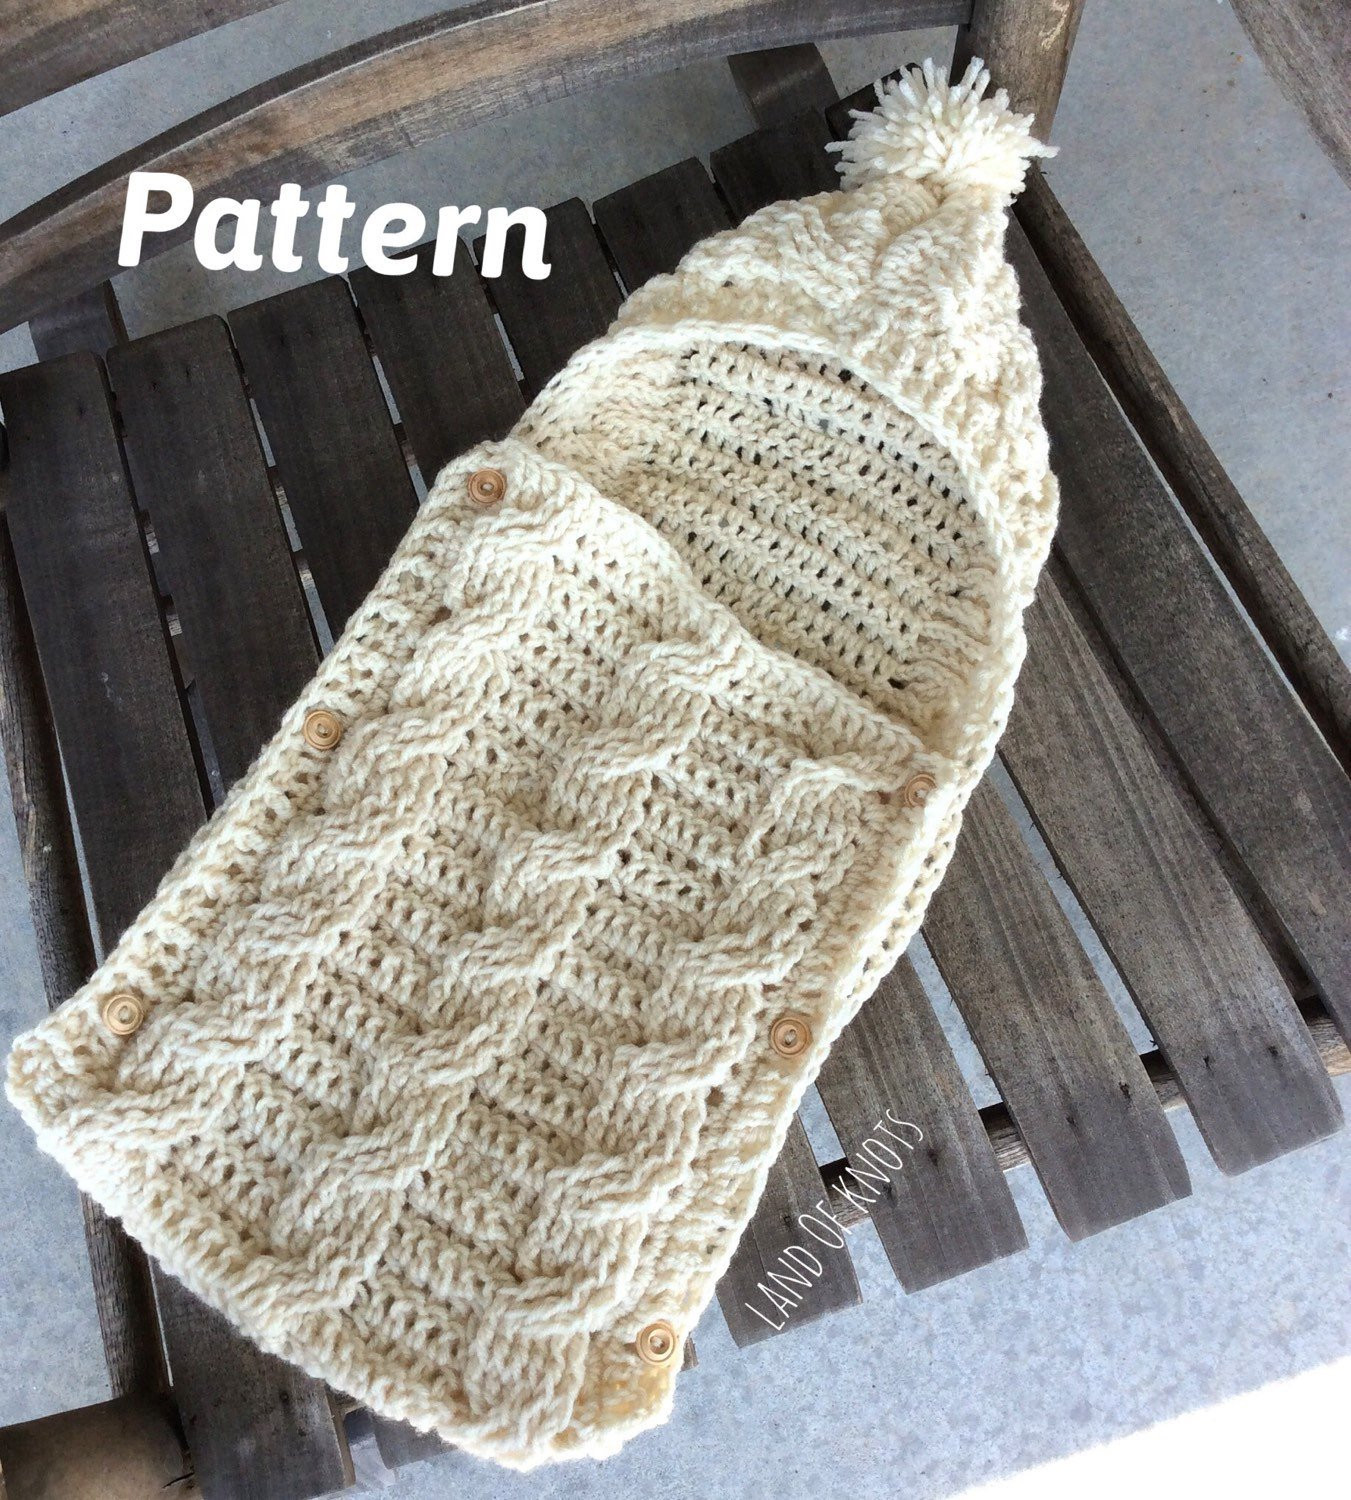 Newborn Crochet Patterns Fresh Pattern Crochet Swaddle Pattern Cable Crochet Pattern Of Incredible 41 Ideas Newborn Crochet Patterns